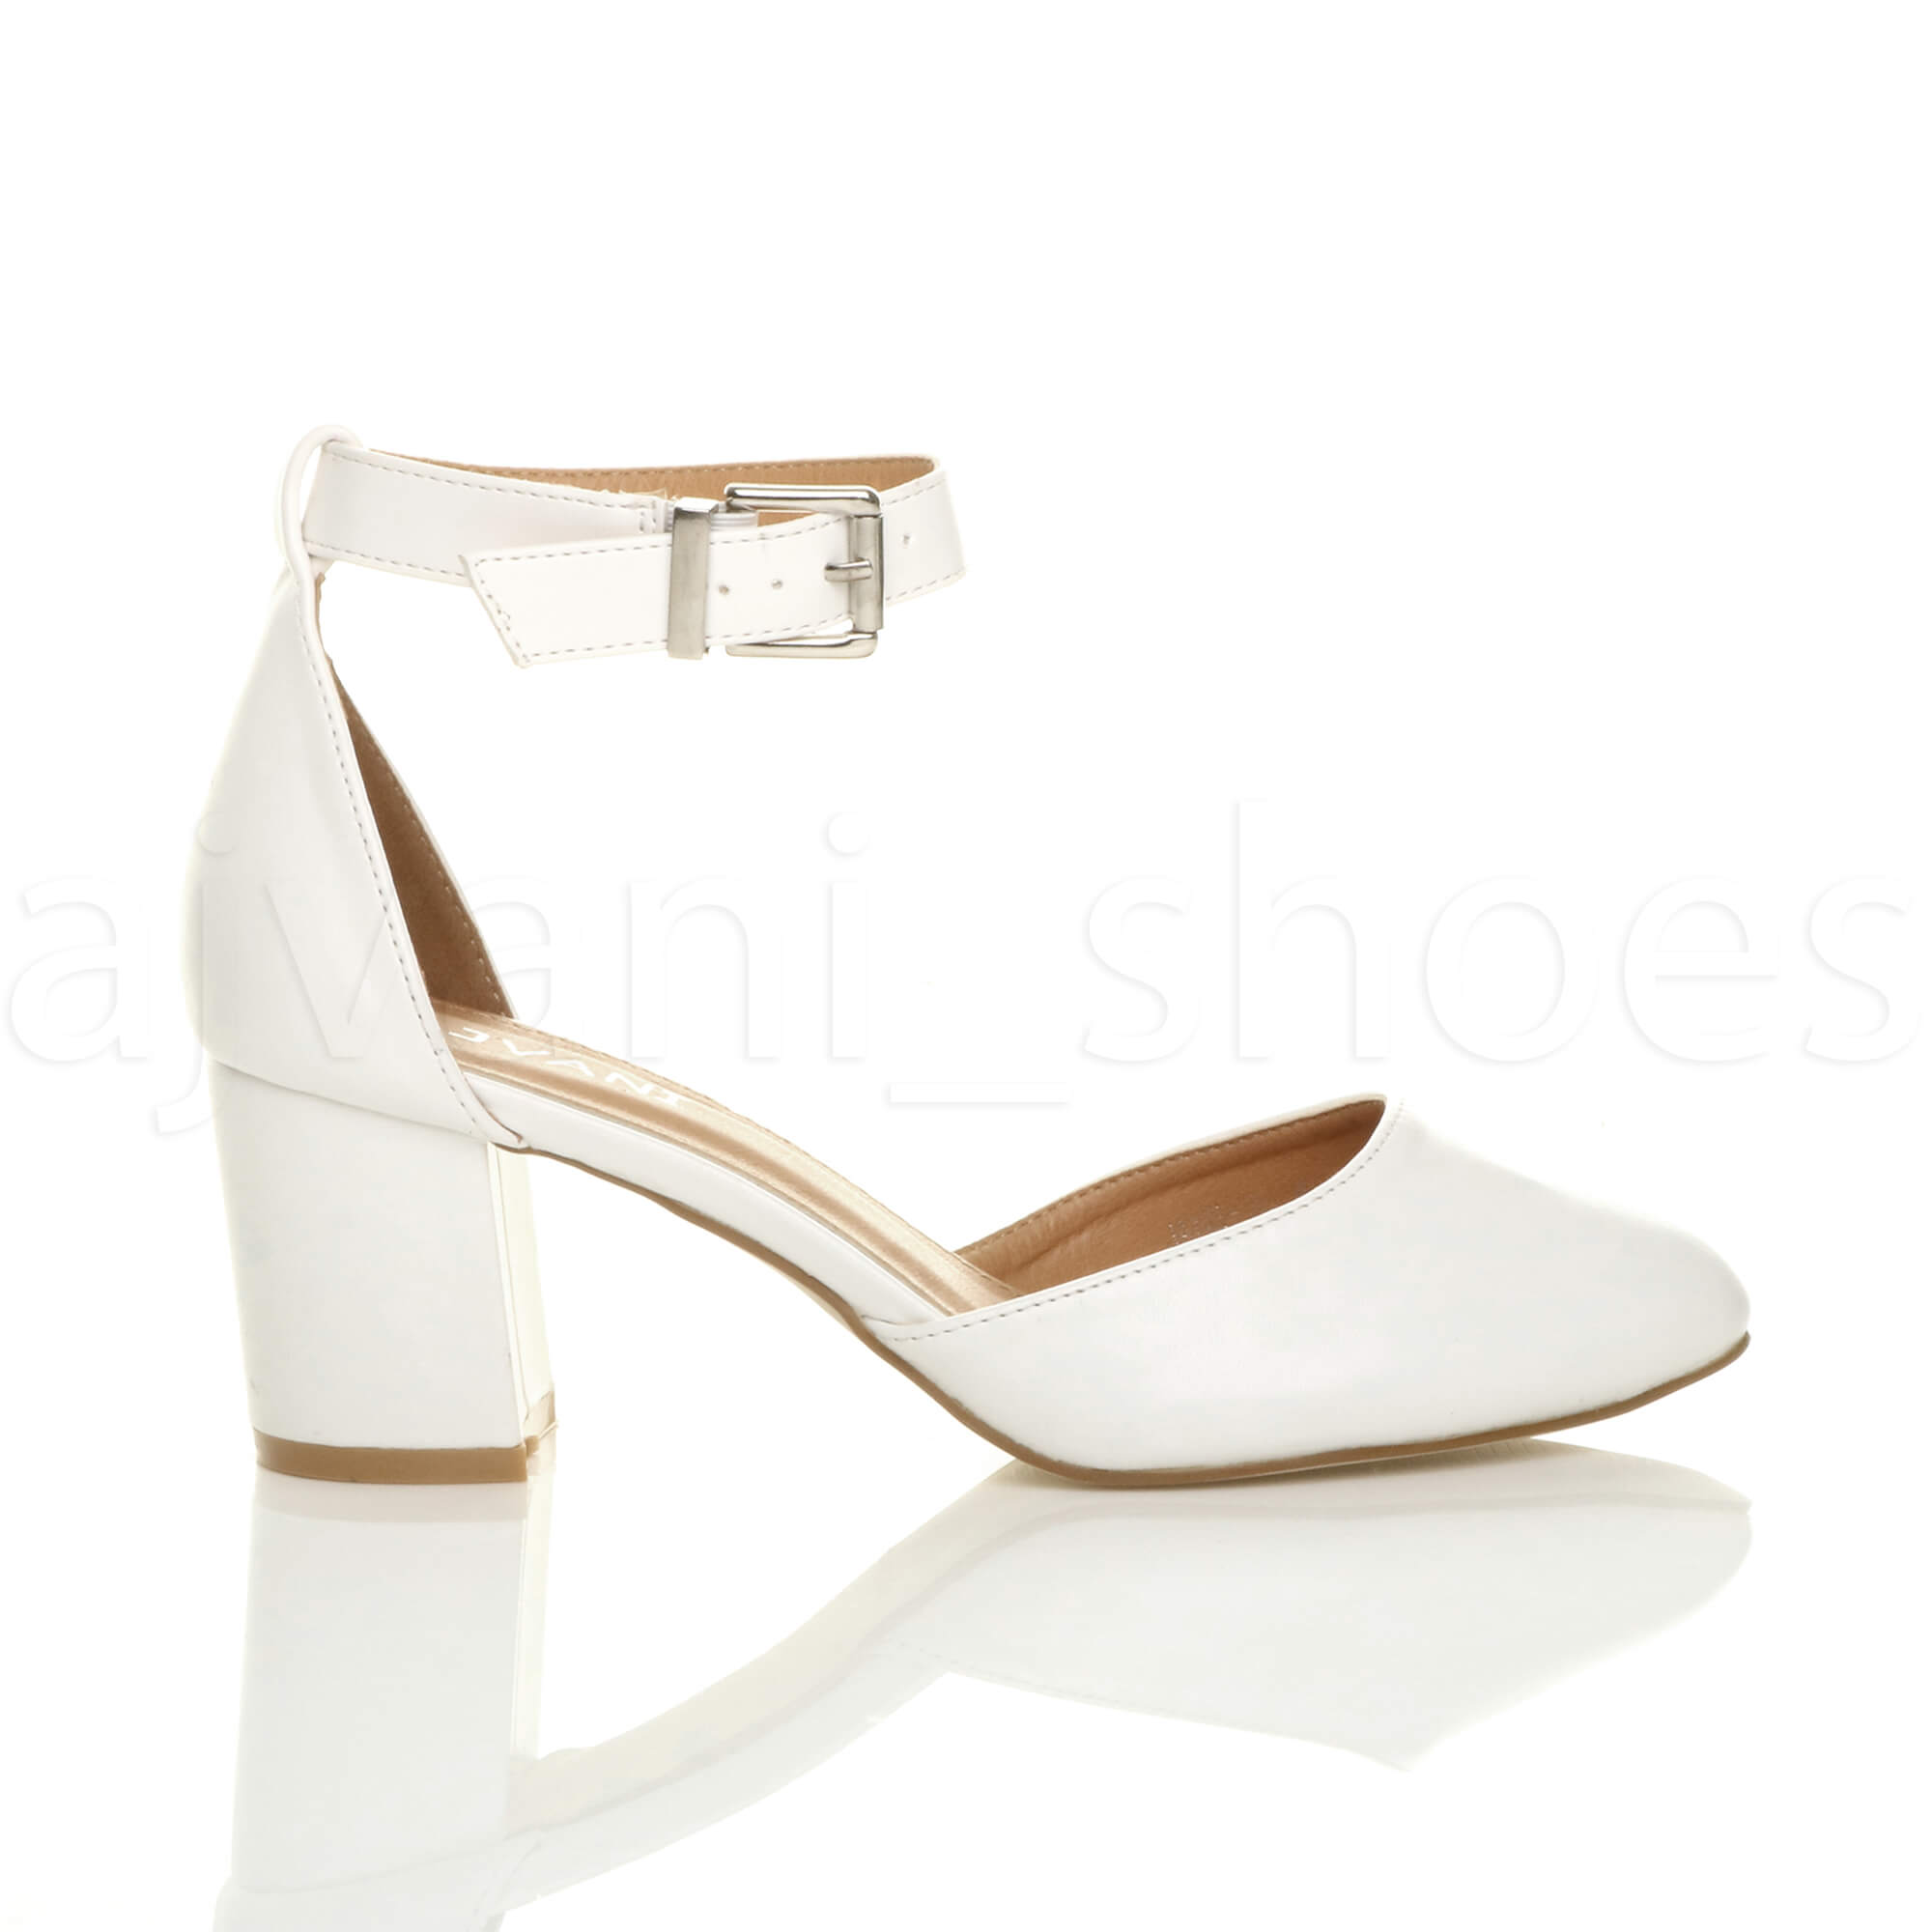 WOMENS-LADIES-LOW-MID-BLOCK-HEEL-ANKLE-STRAP-MARY-JANE-COURT-SHOES-SANDALS-SIZE thumbnail 195